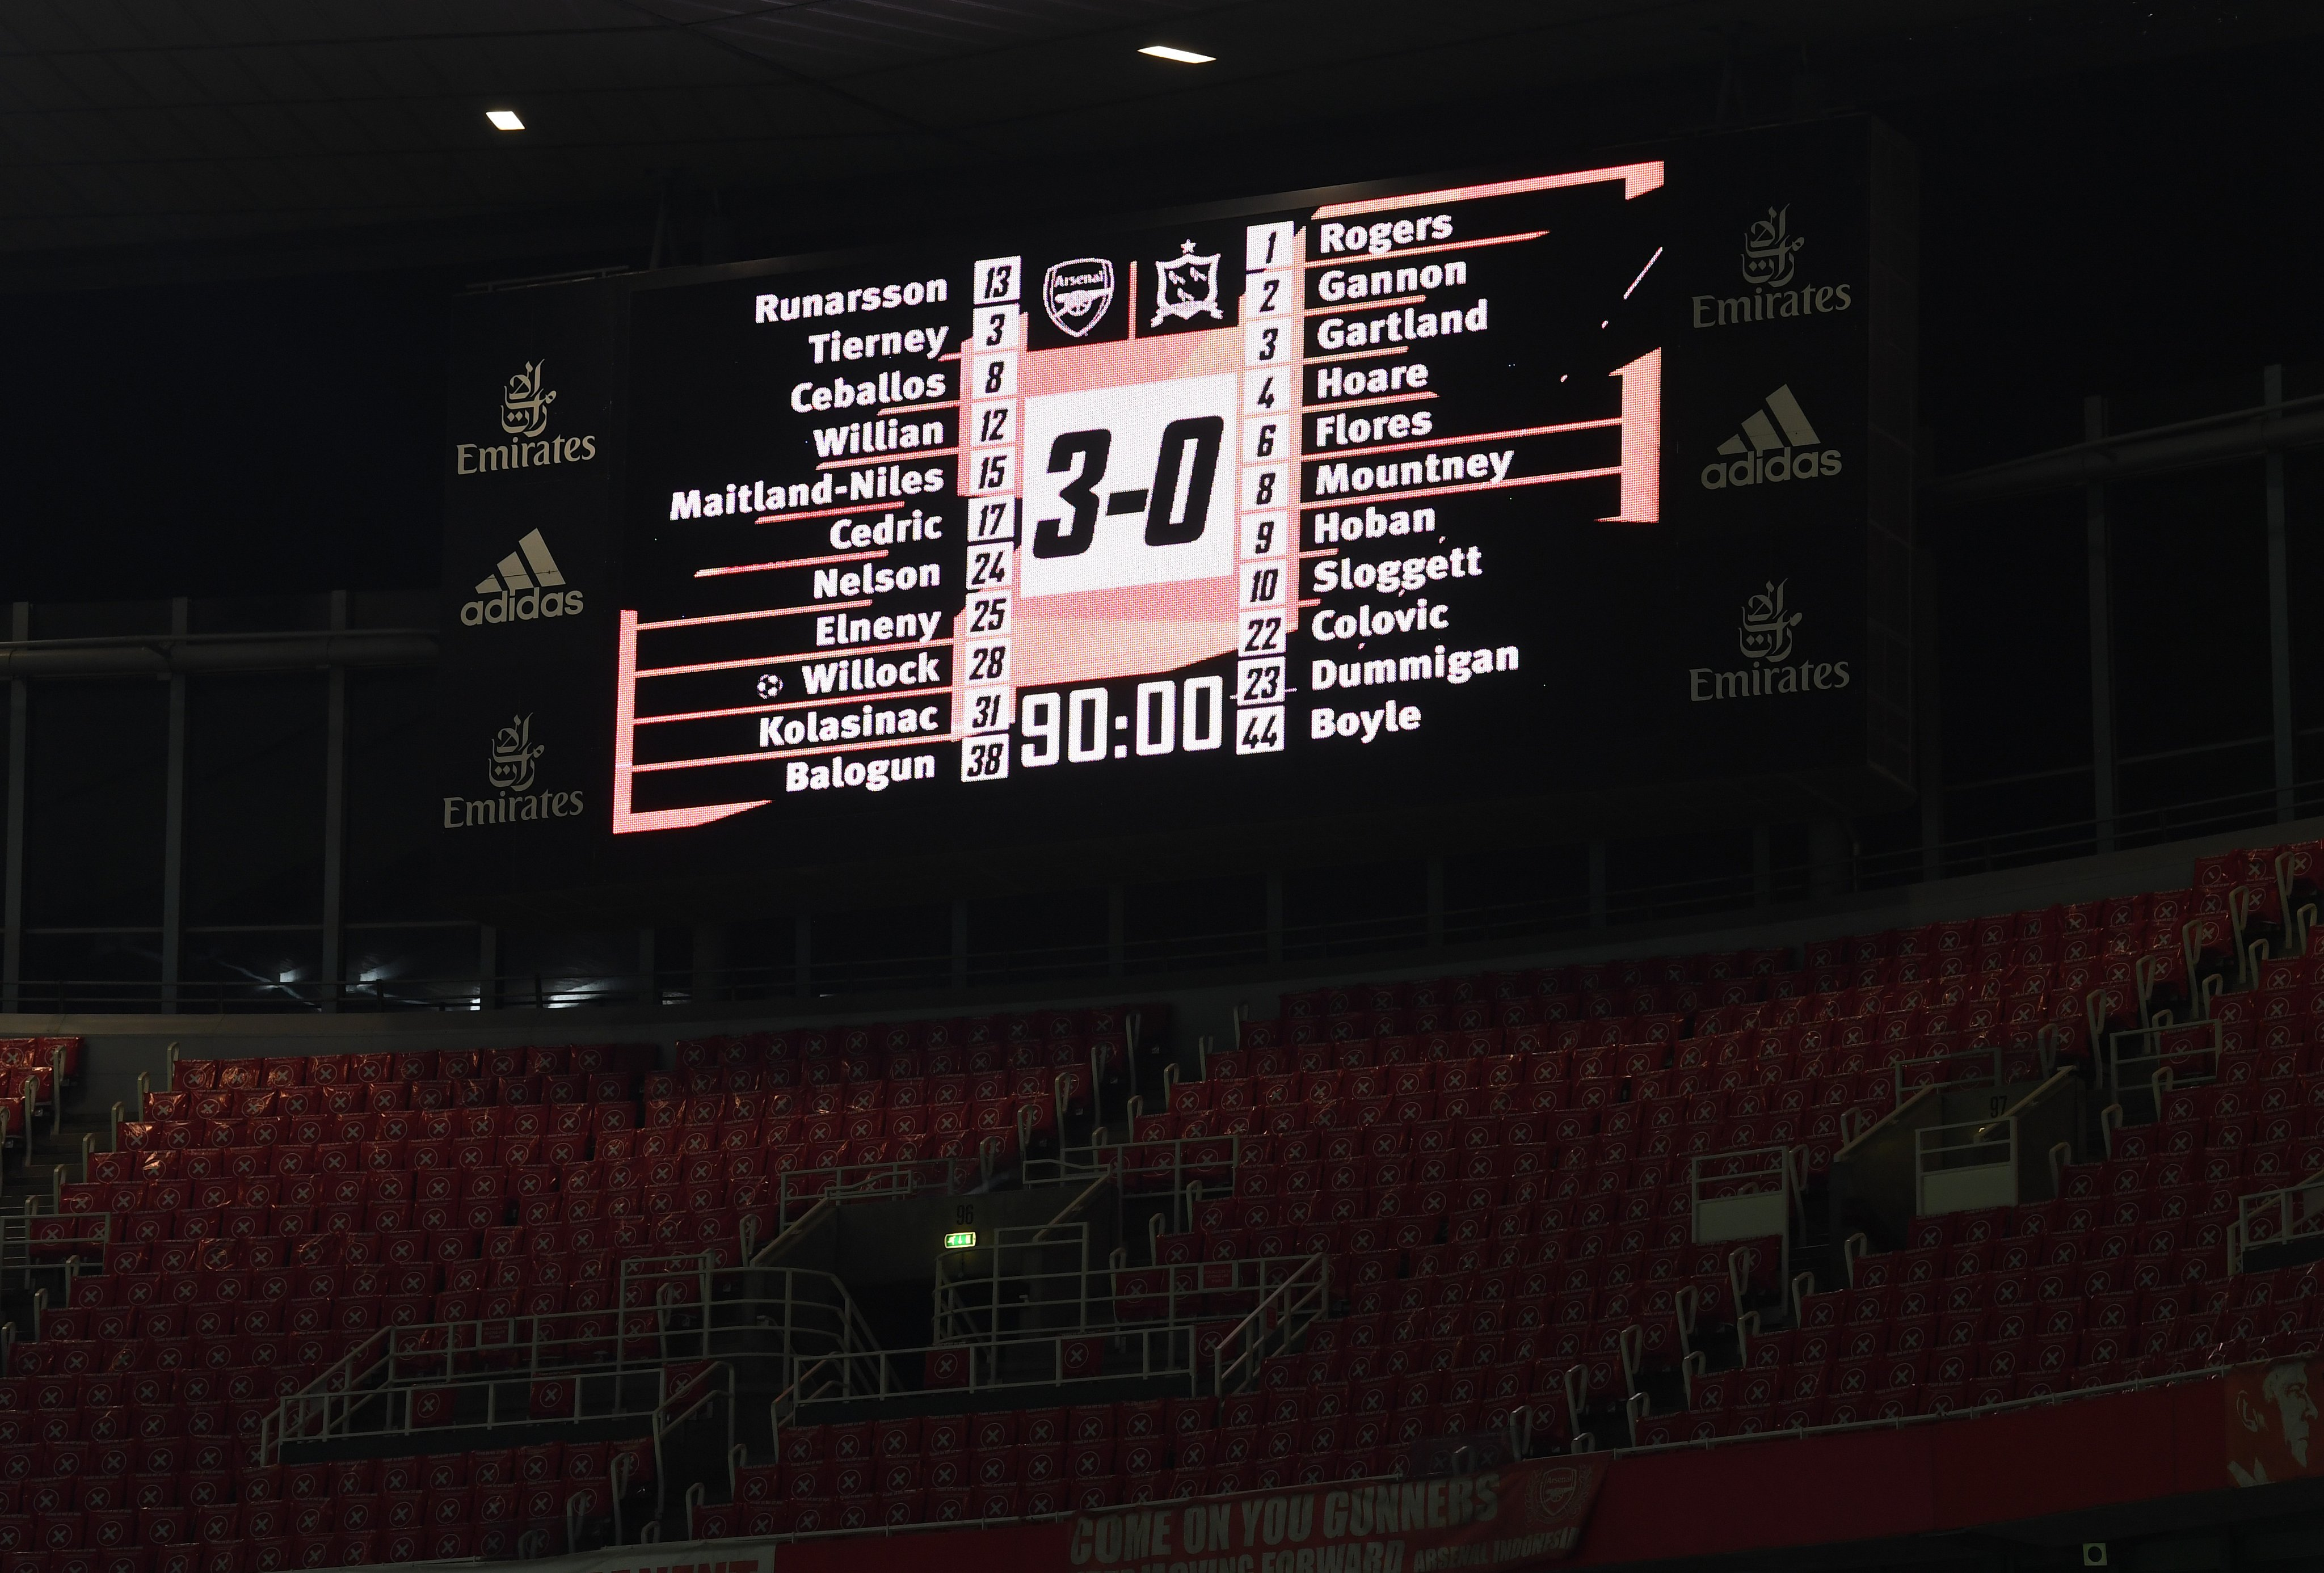 A picture of the scoreboard at Emirates Stadium at full-time of our 3-0 win over Dundalk